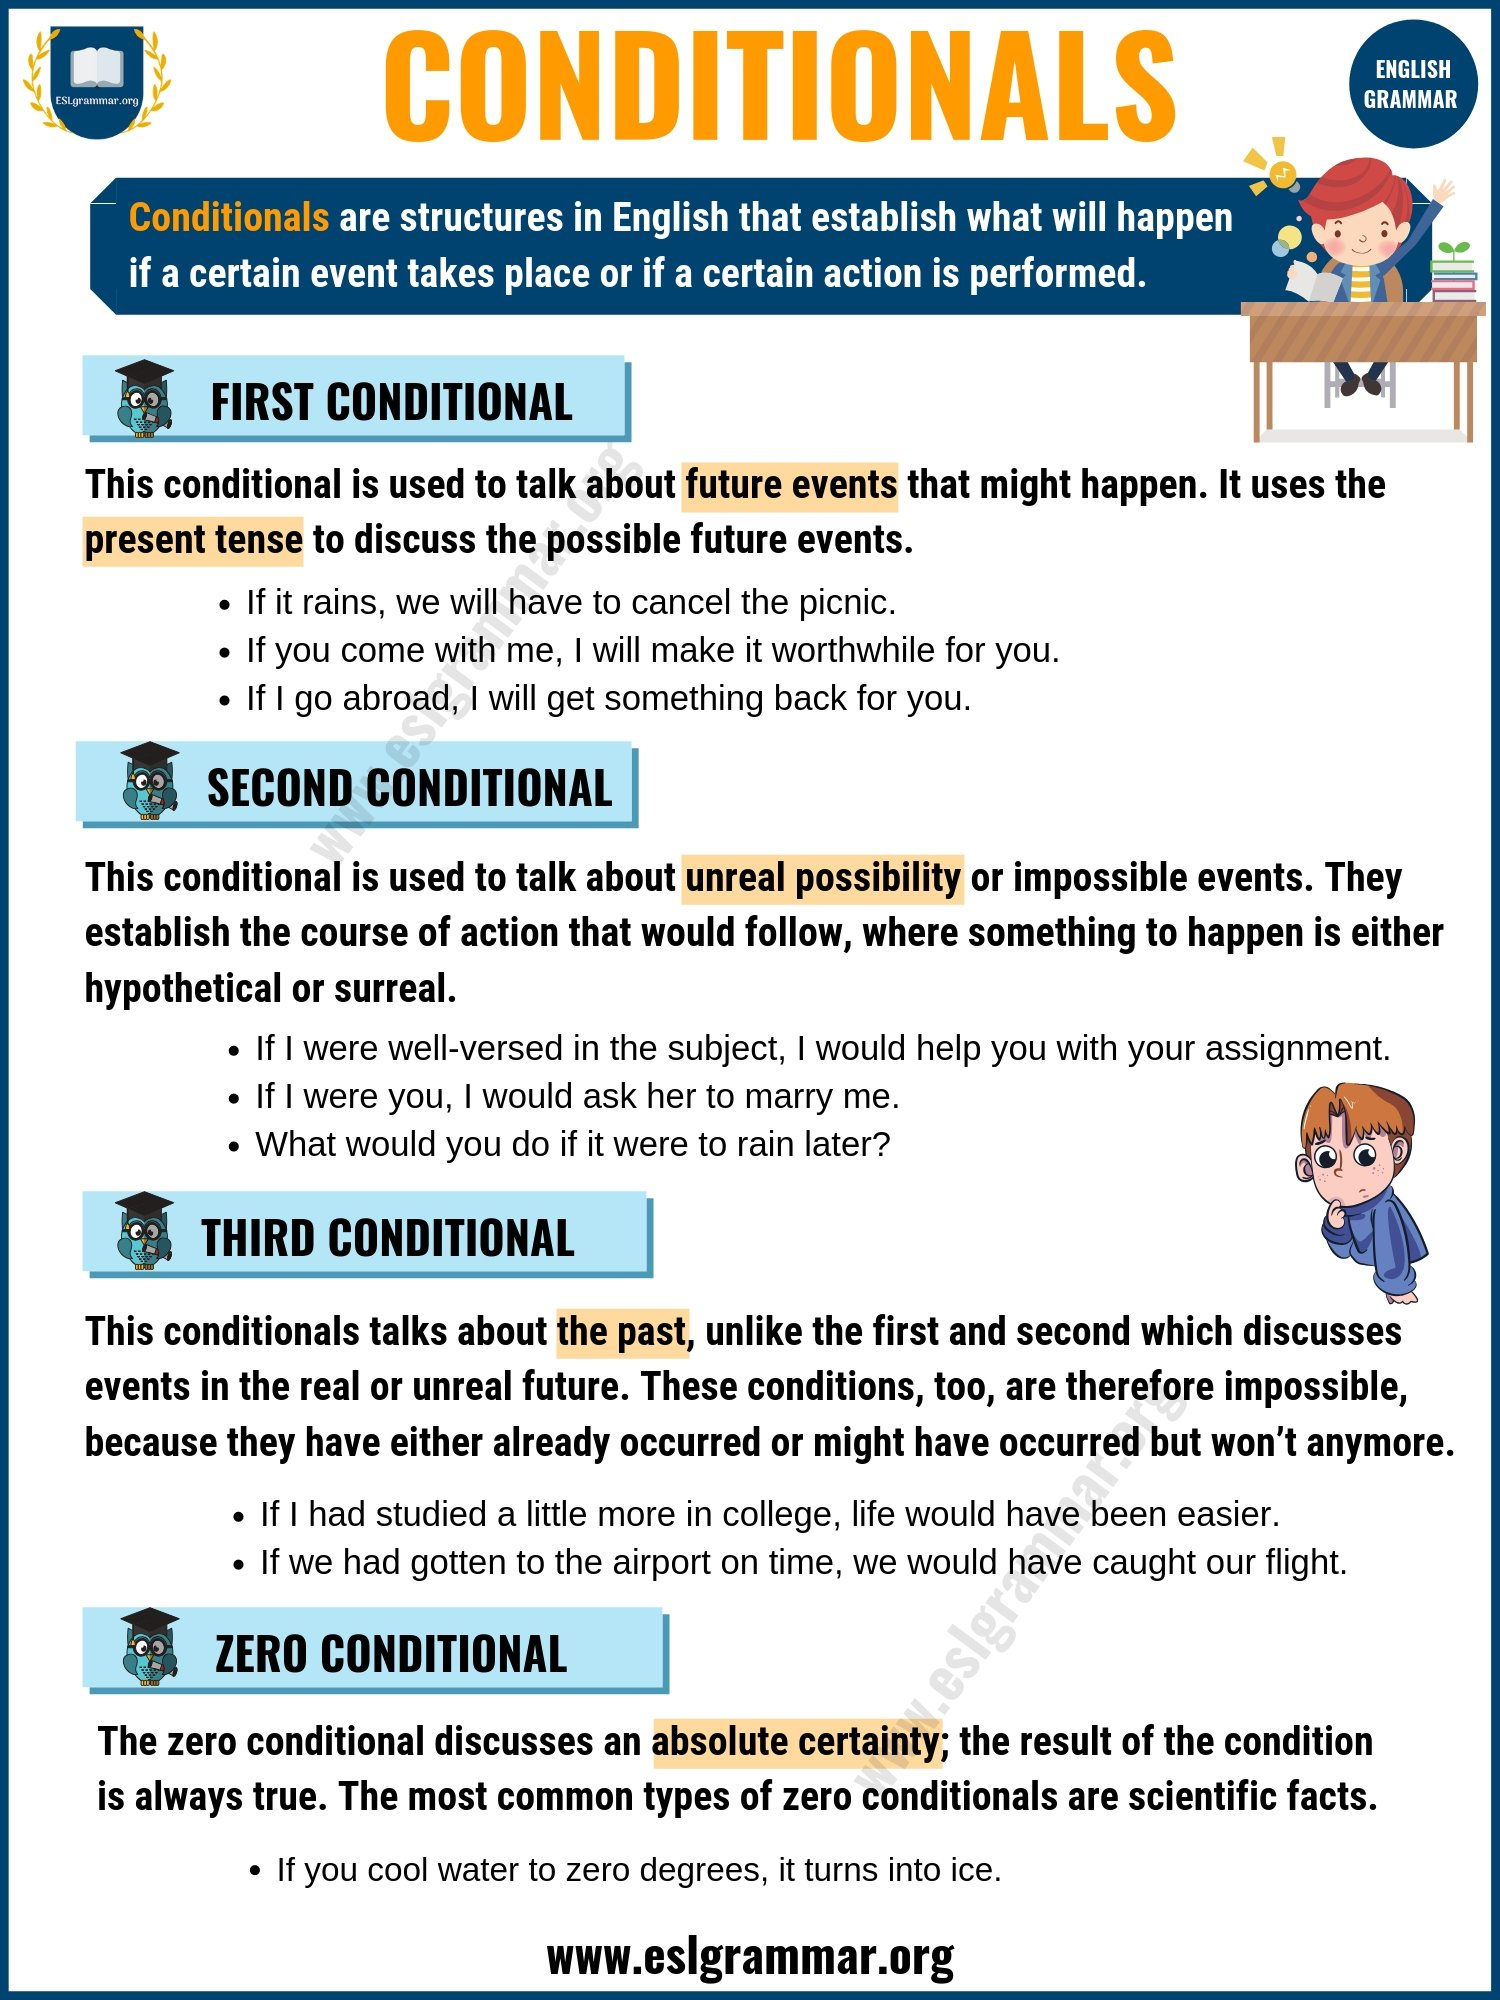 Conditionals: First, Second, and Third Conditional in English